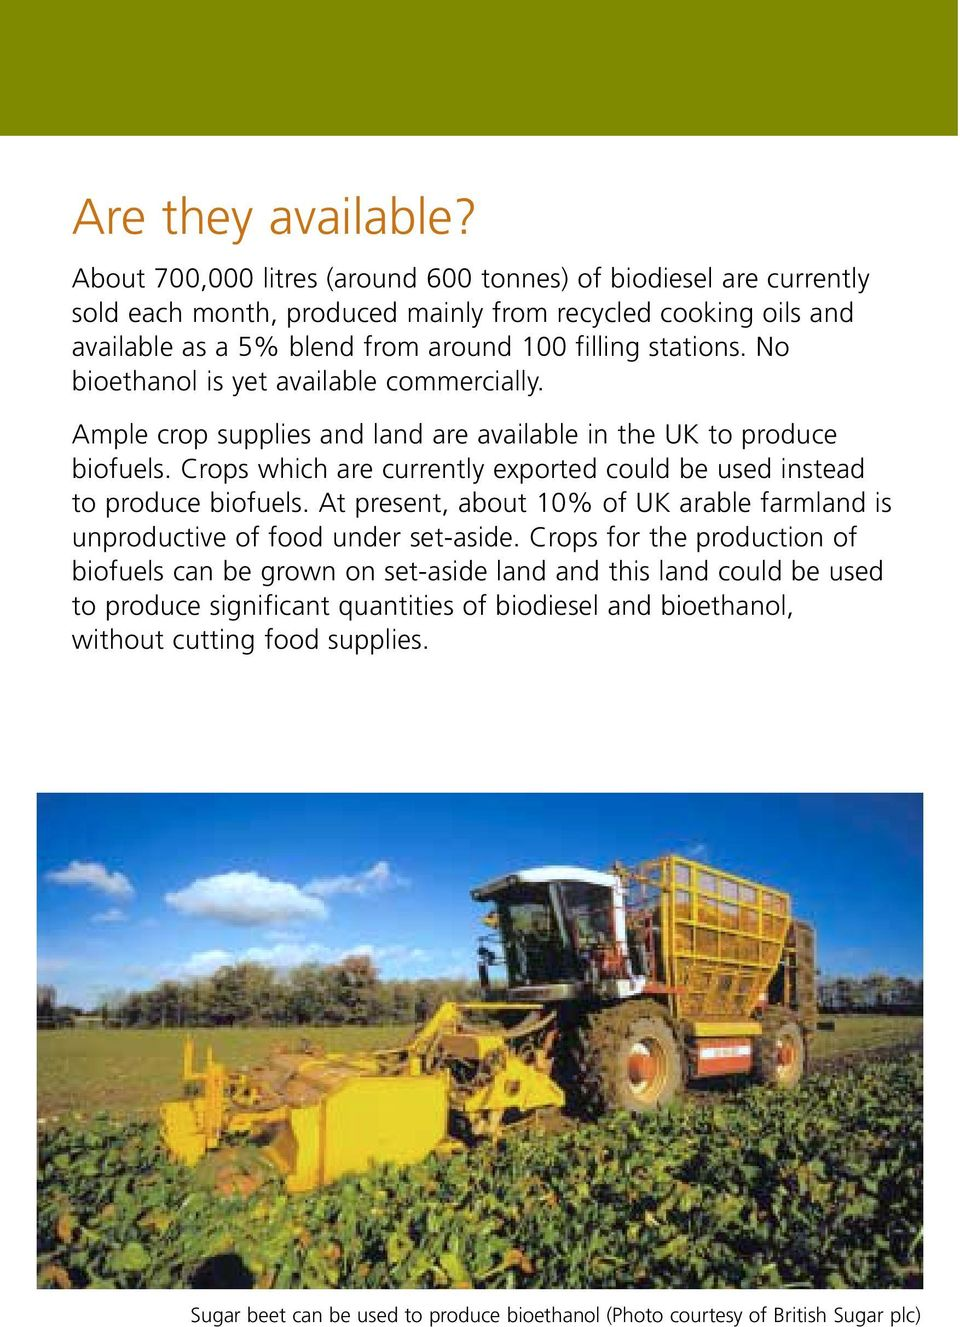 No bioethanol is yet available commercially. Ample crop supplies and land are available in the UK to produce biofuels.